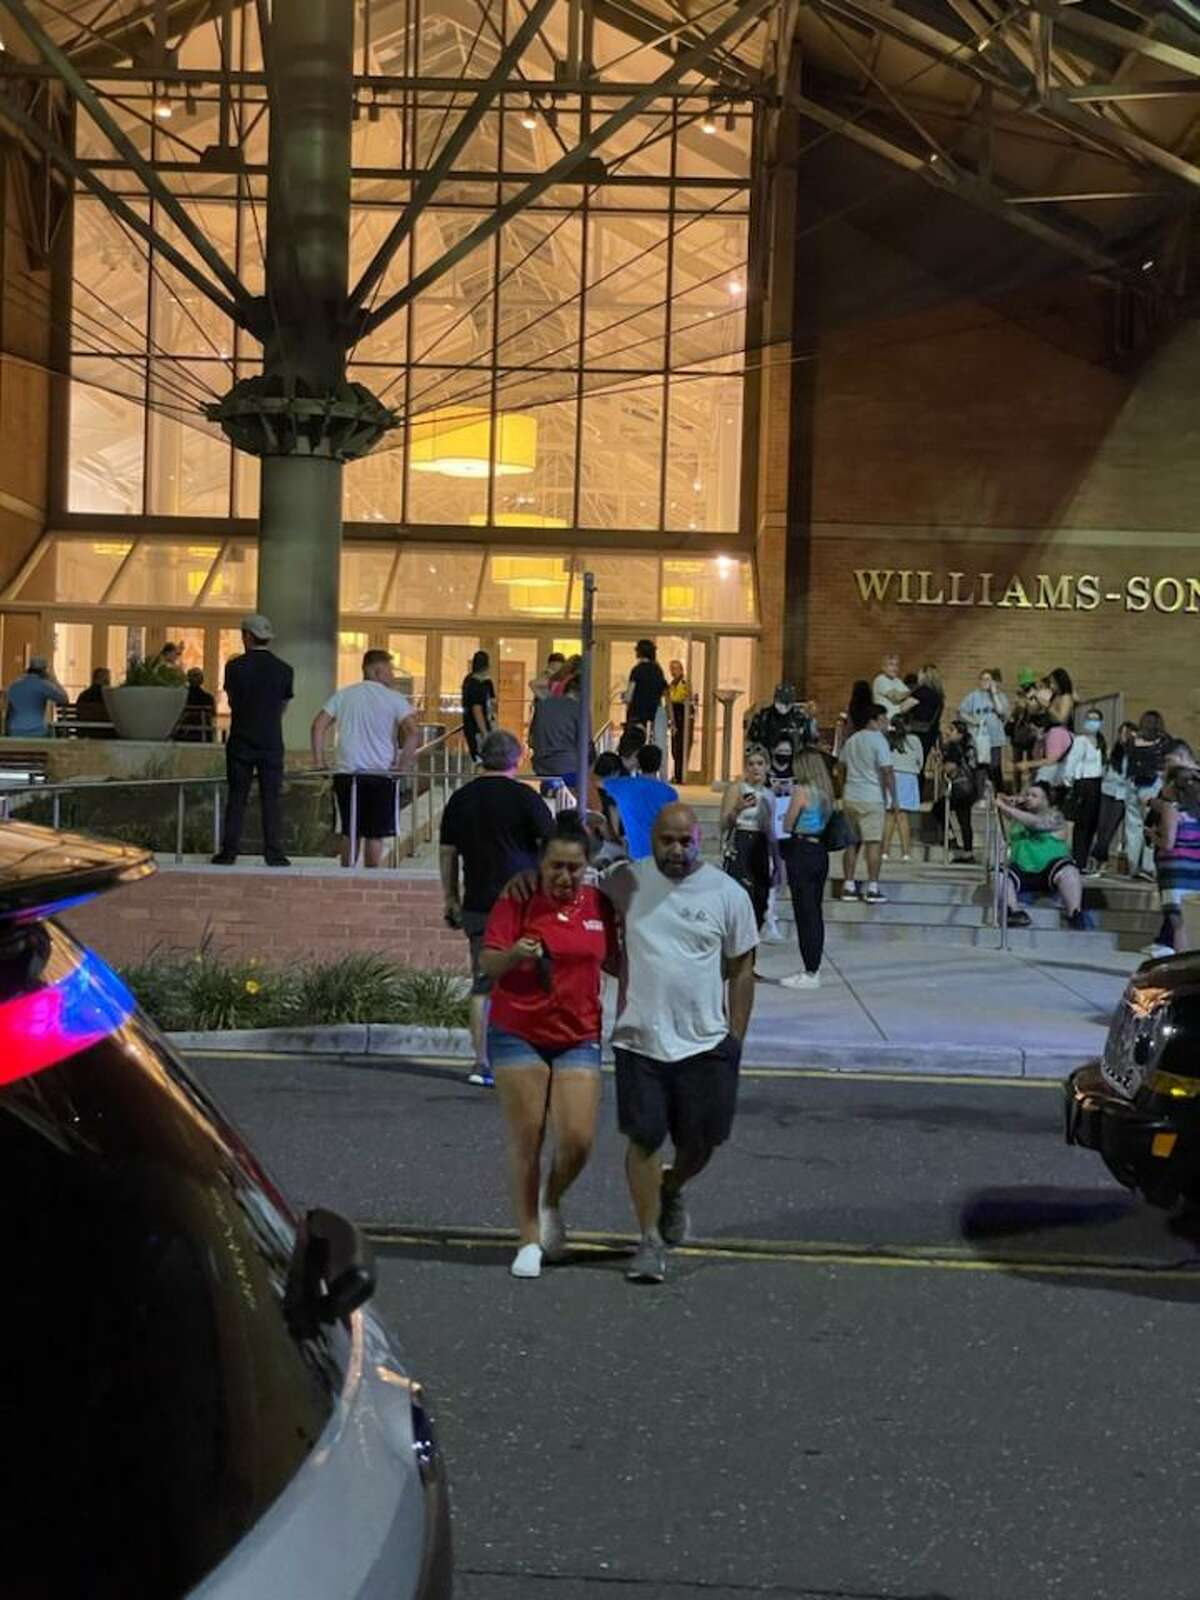 Police said a teenage girl was shot Wednesday night at the Danbury Fair mall. The suspect was still at large.